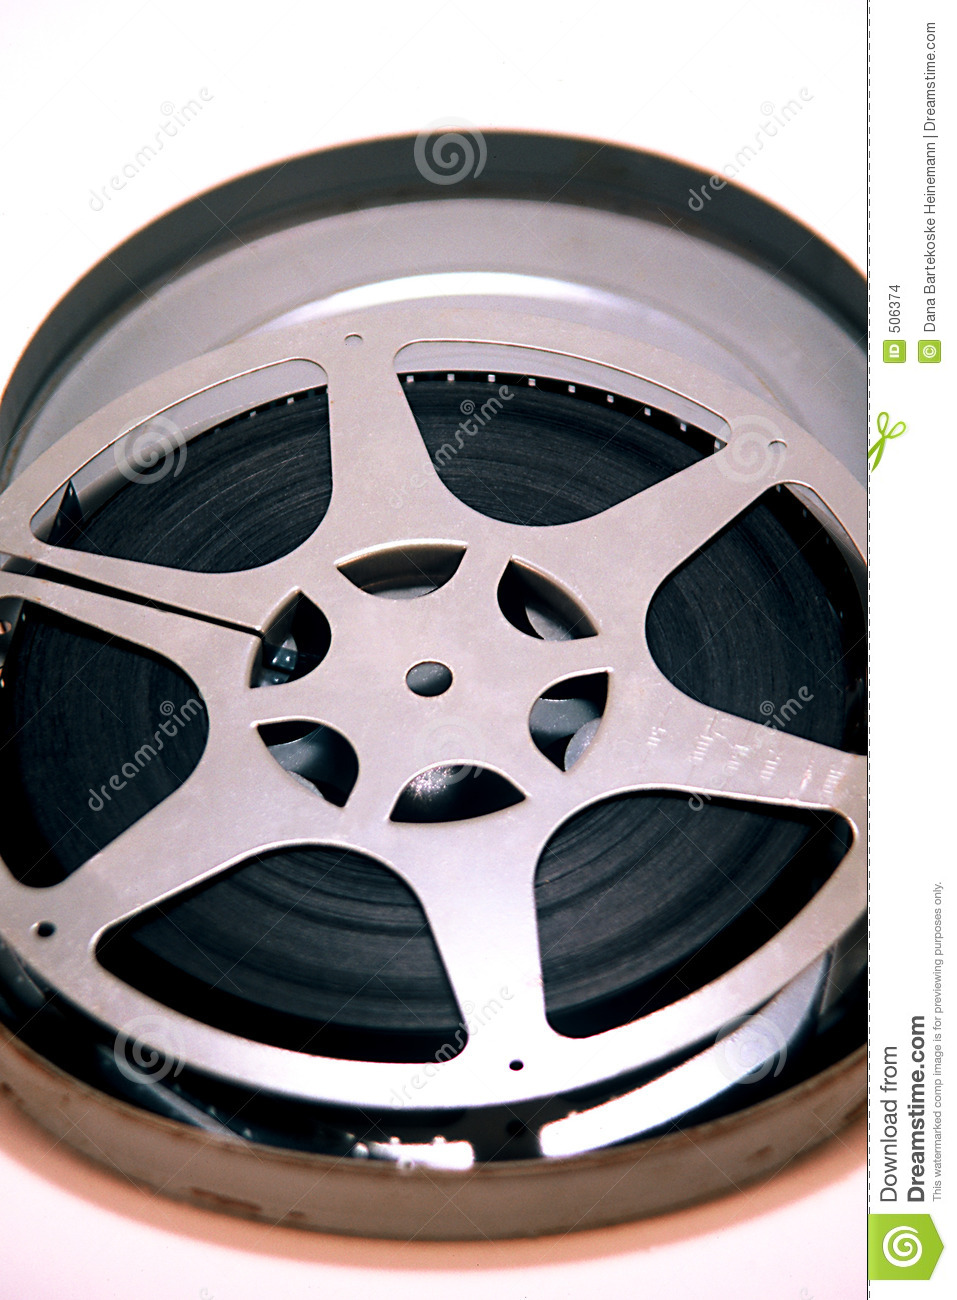 16mm Film Reel stock photo  Image of super, watch, home - 506374